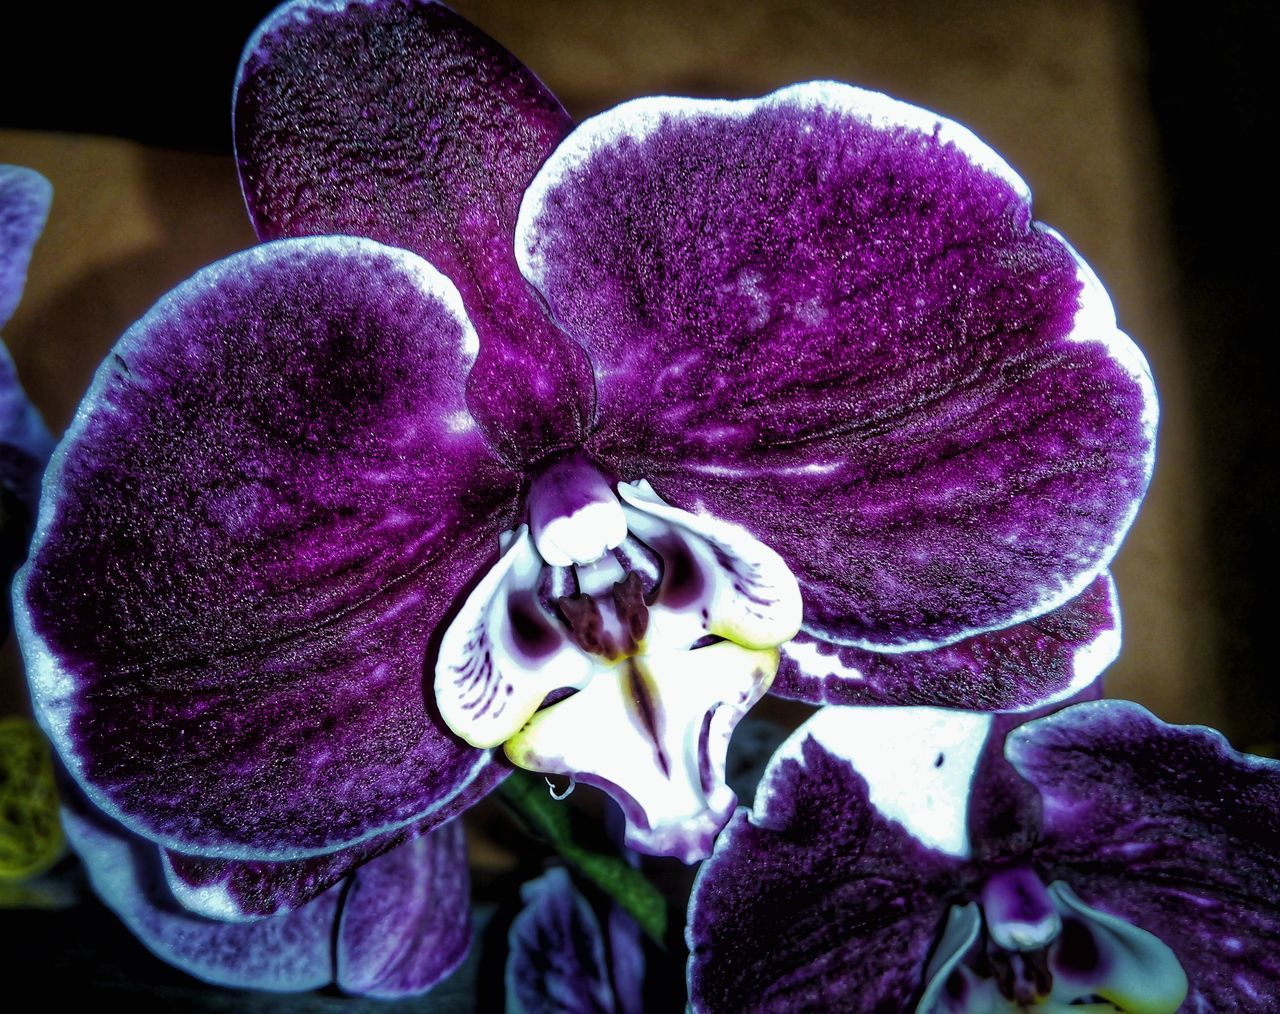 Hello World Taking Photos Flowers_collection Purple Beauty In Nature Flower Photography No People Flower Head Flower Orchid Blossoms Flower Collection Life In Colors